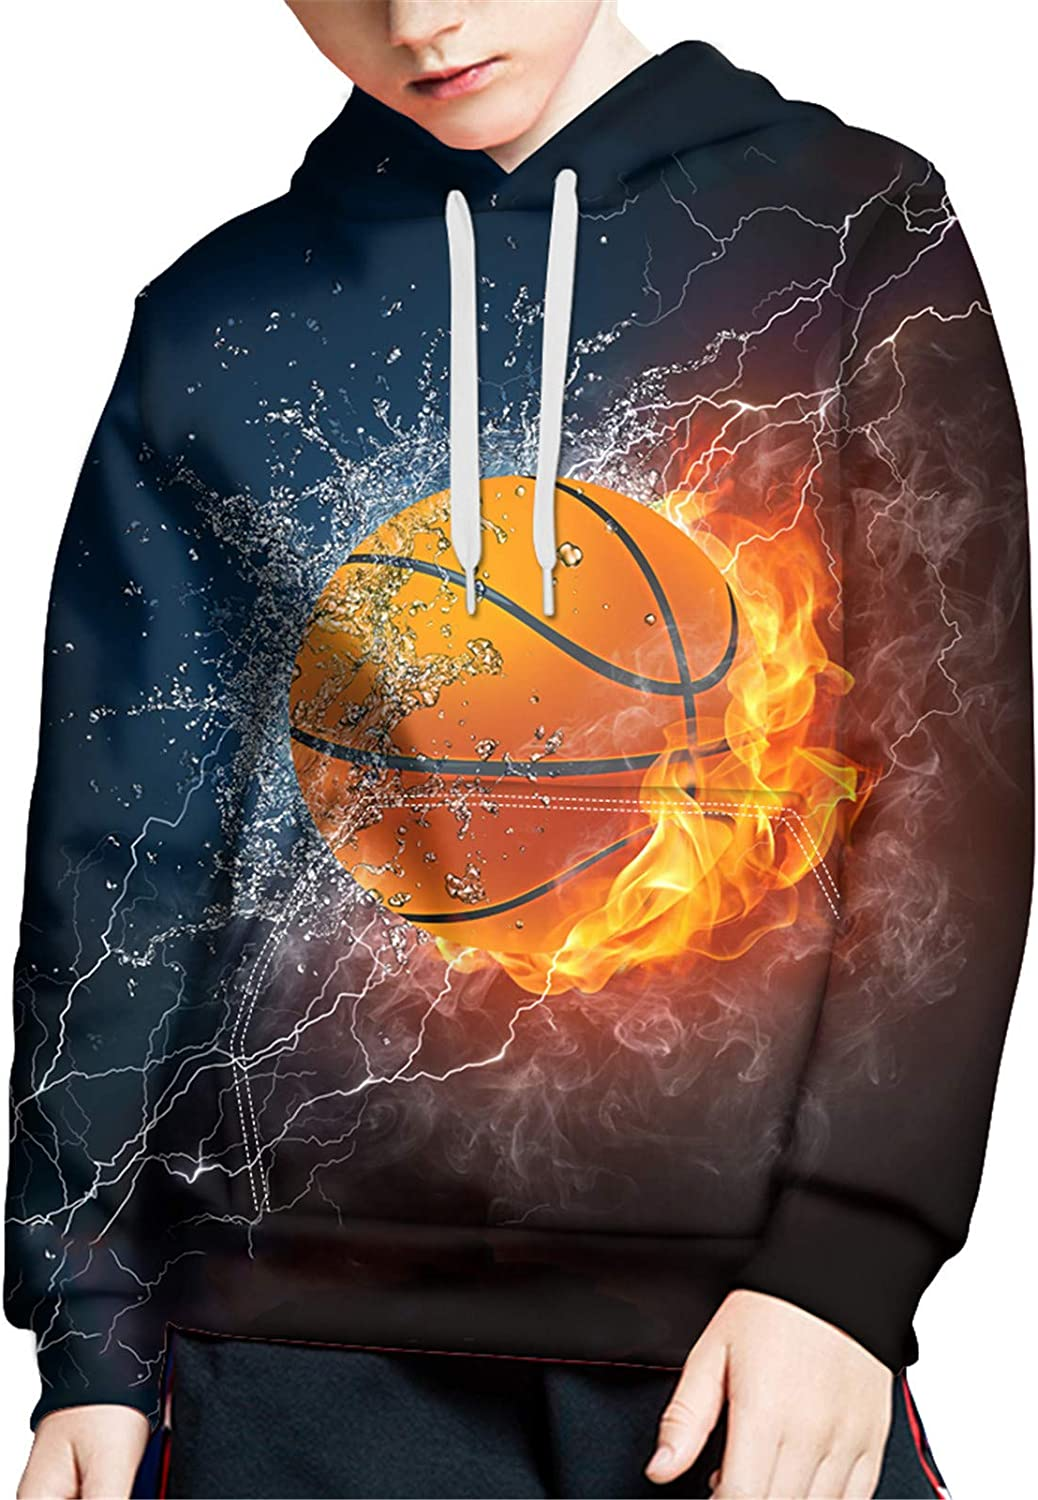 ZFRXIGN Hoodies with Strings Kids Pullover Sweatshirt for Boys Long Sleeve Machine Washable 6-16 Years